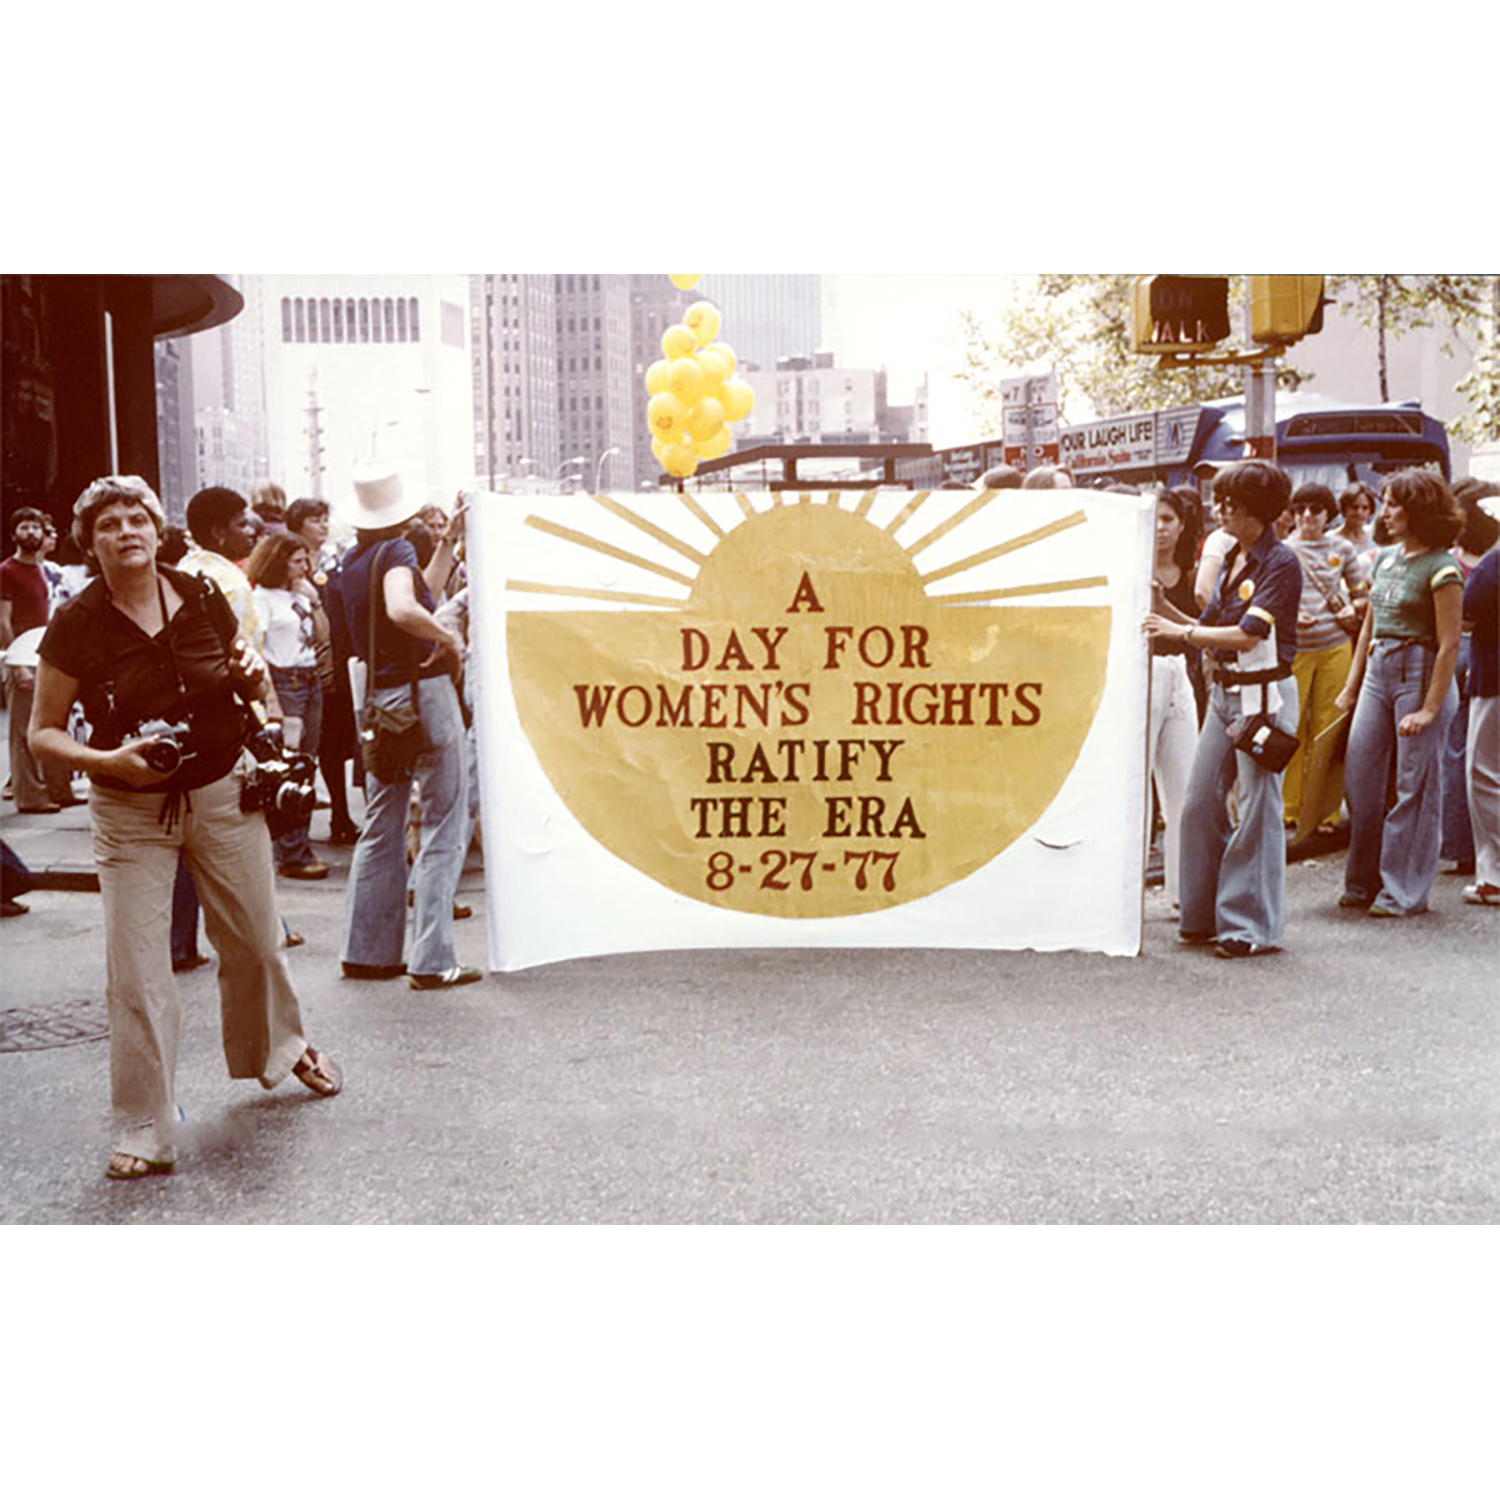 bettye_lane_at_a_day_for_womens_rights_new_york_city_august_27_1977_courtesy_of_schlesinger_library_800px.jpg